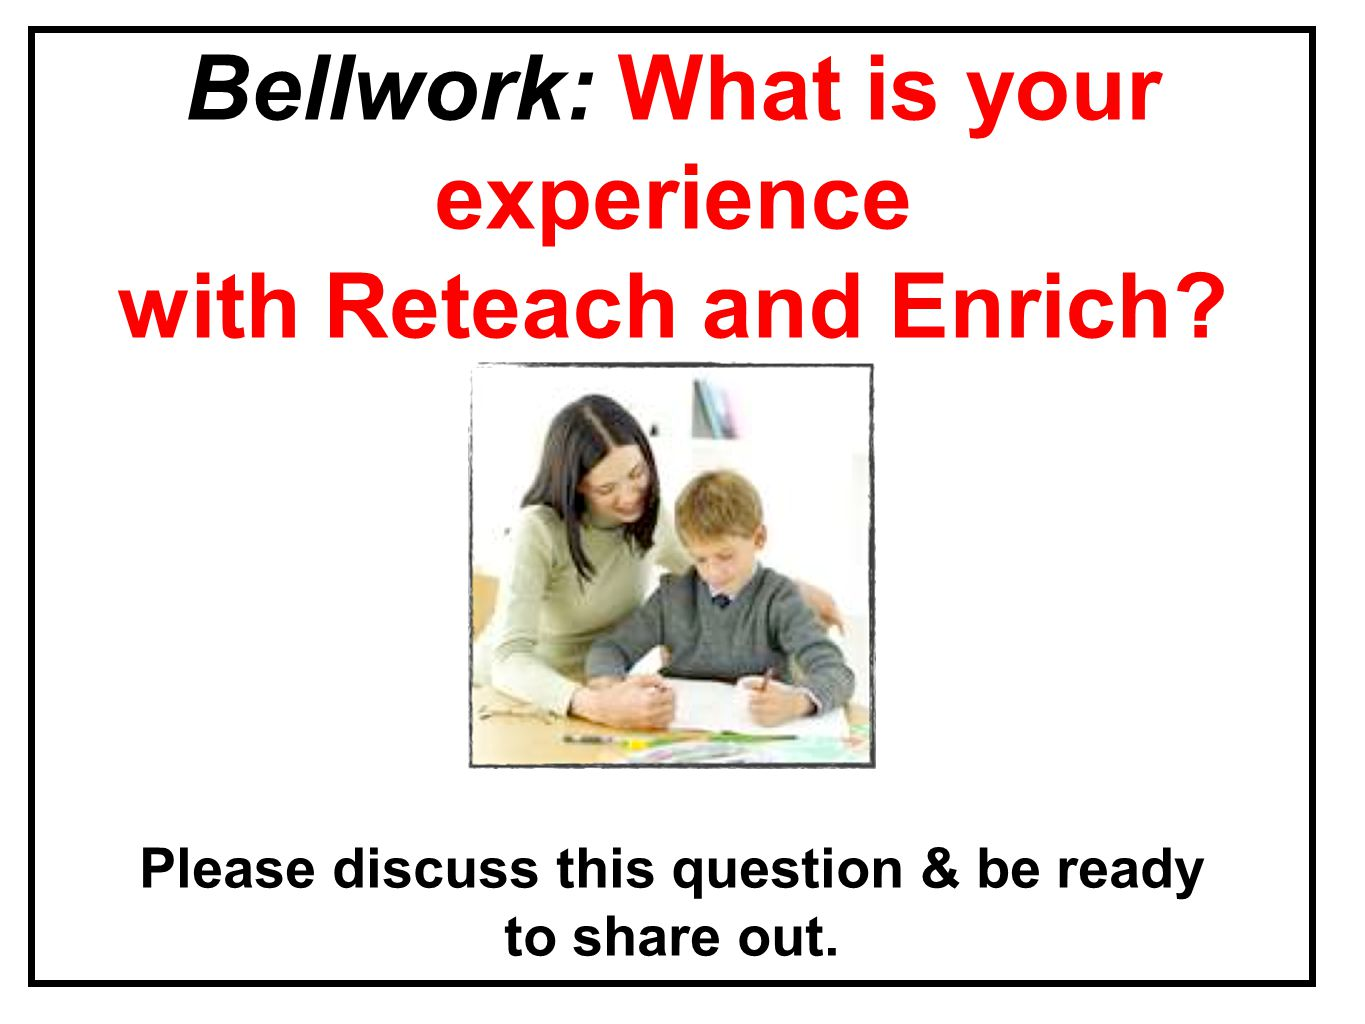 Please discuss this question & be ready to share out. Bellwork: What is your experience with Reteach and Enrich?